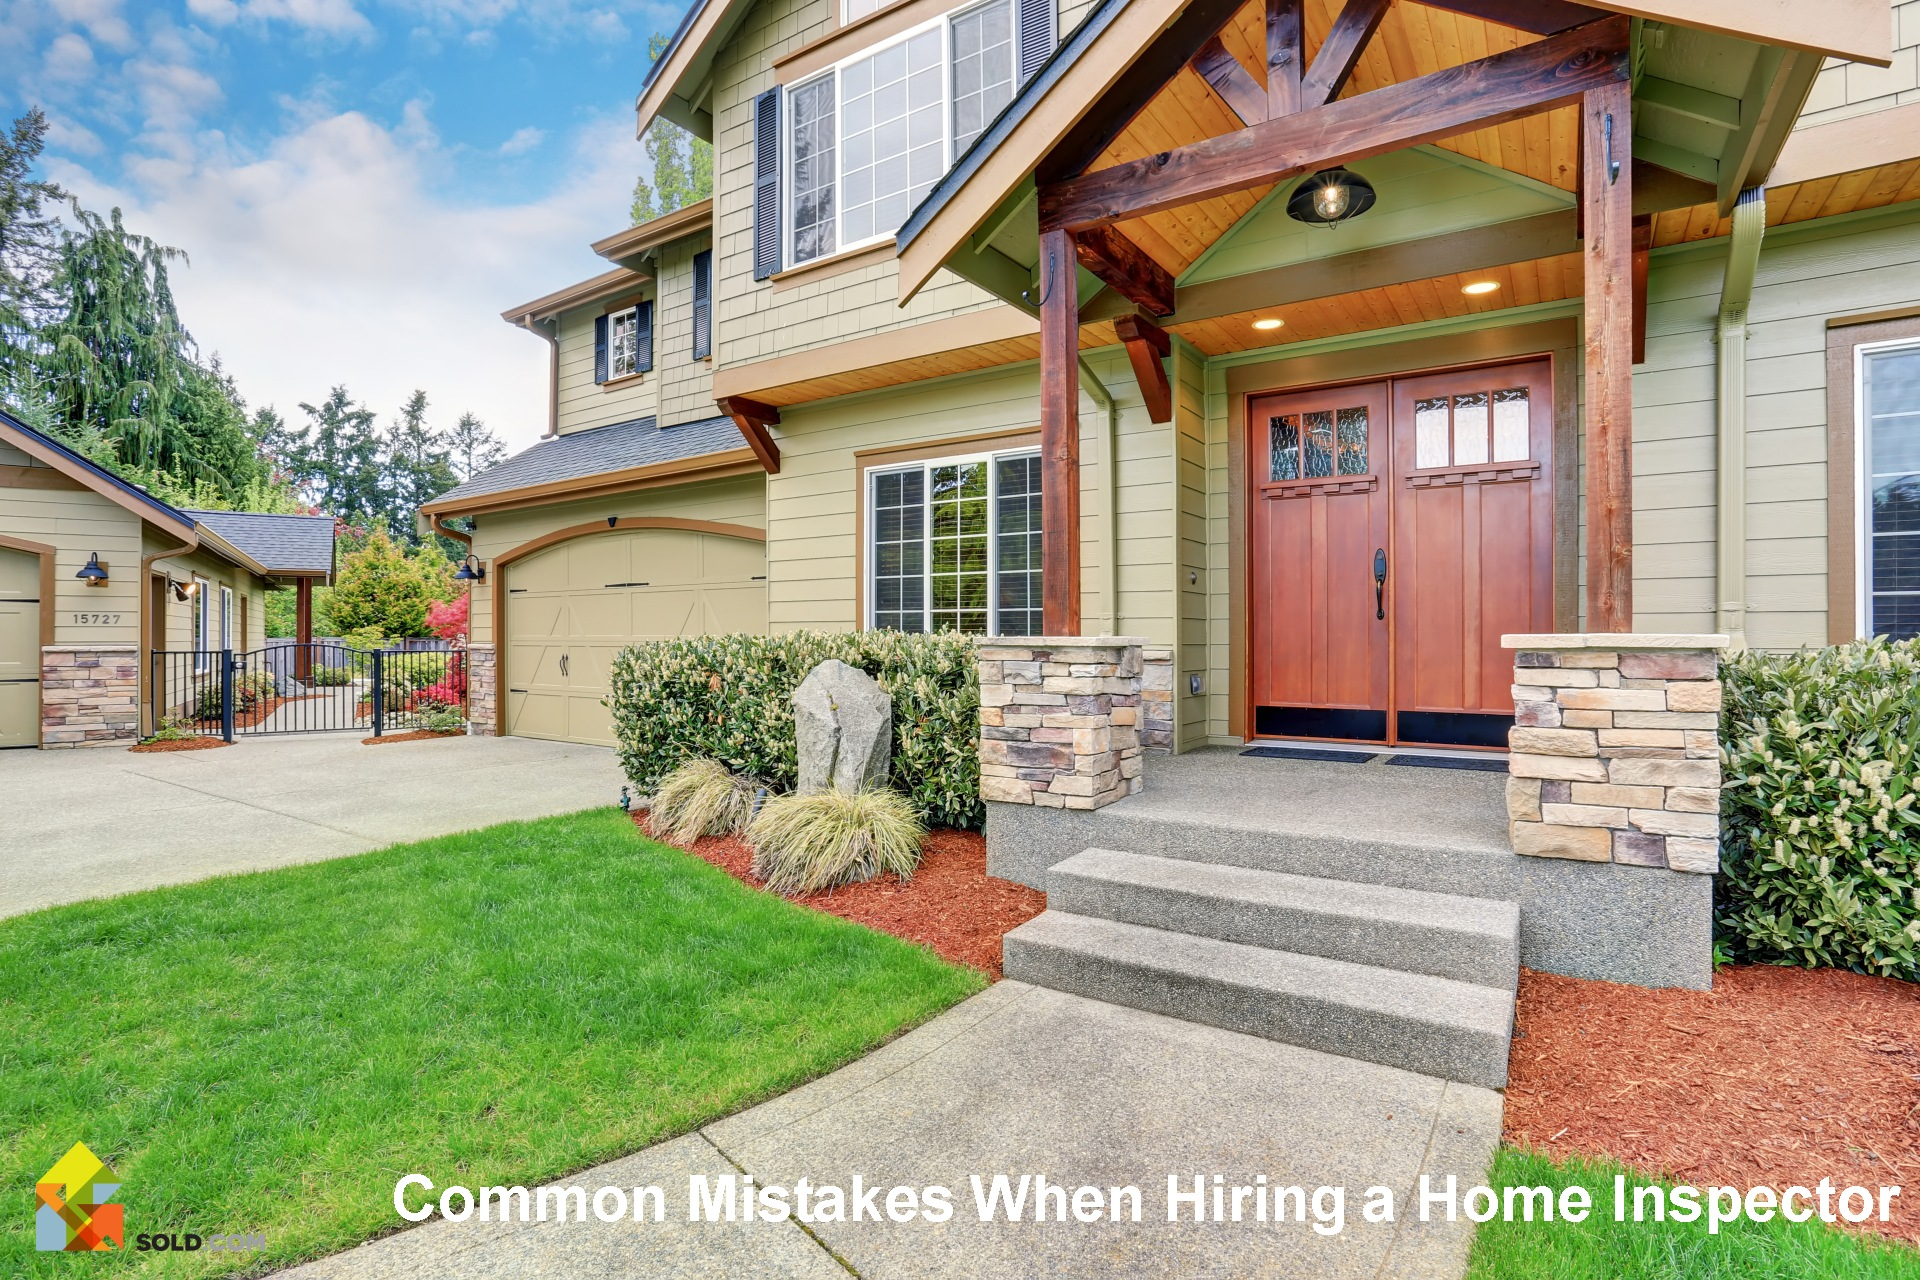 Common Mistakes When Hiring a Home Inspector